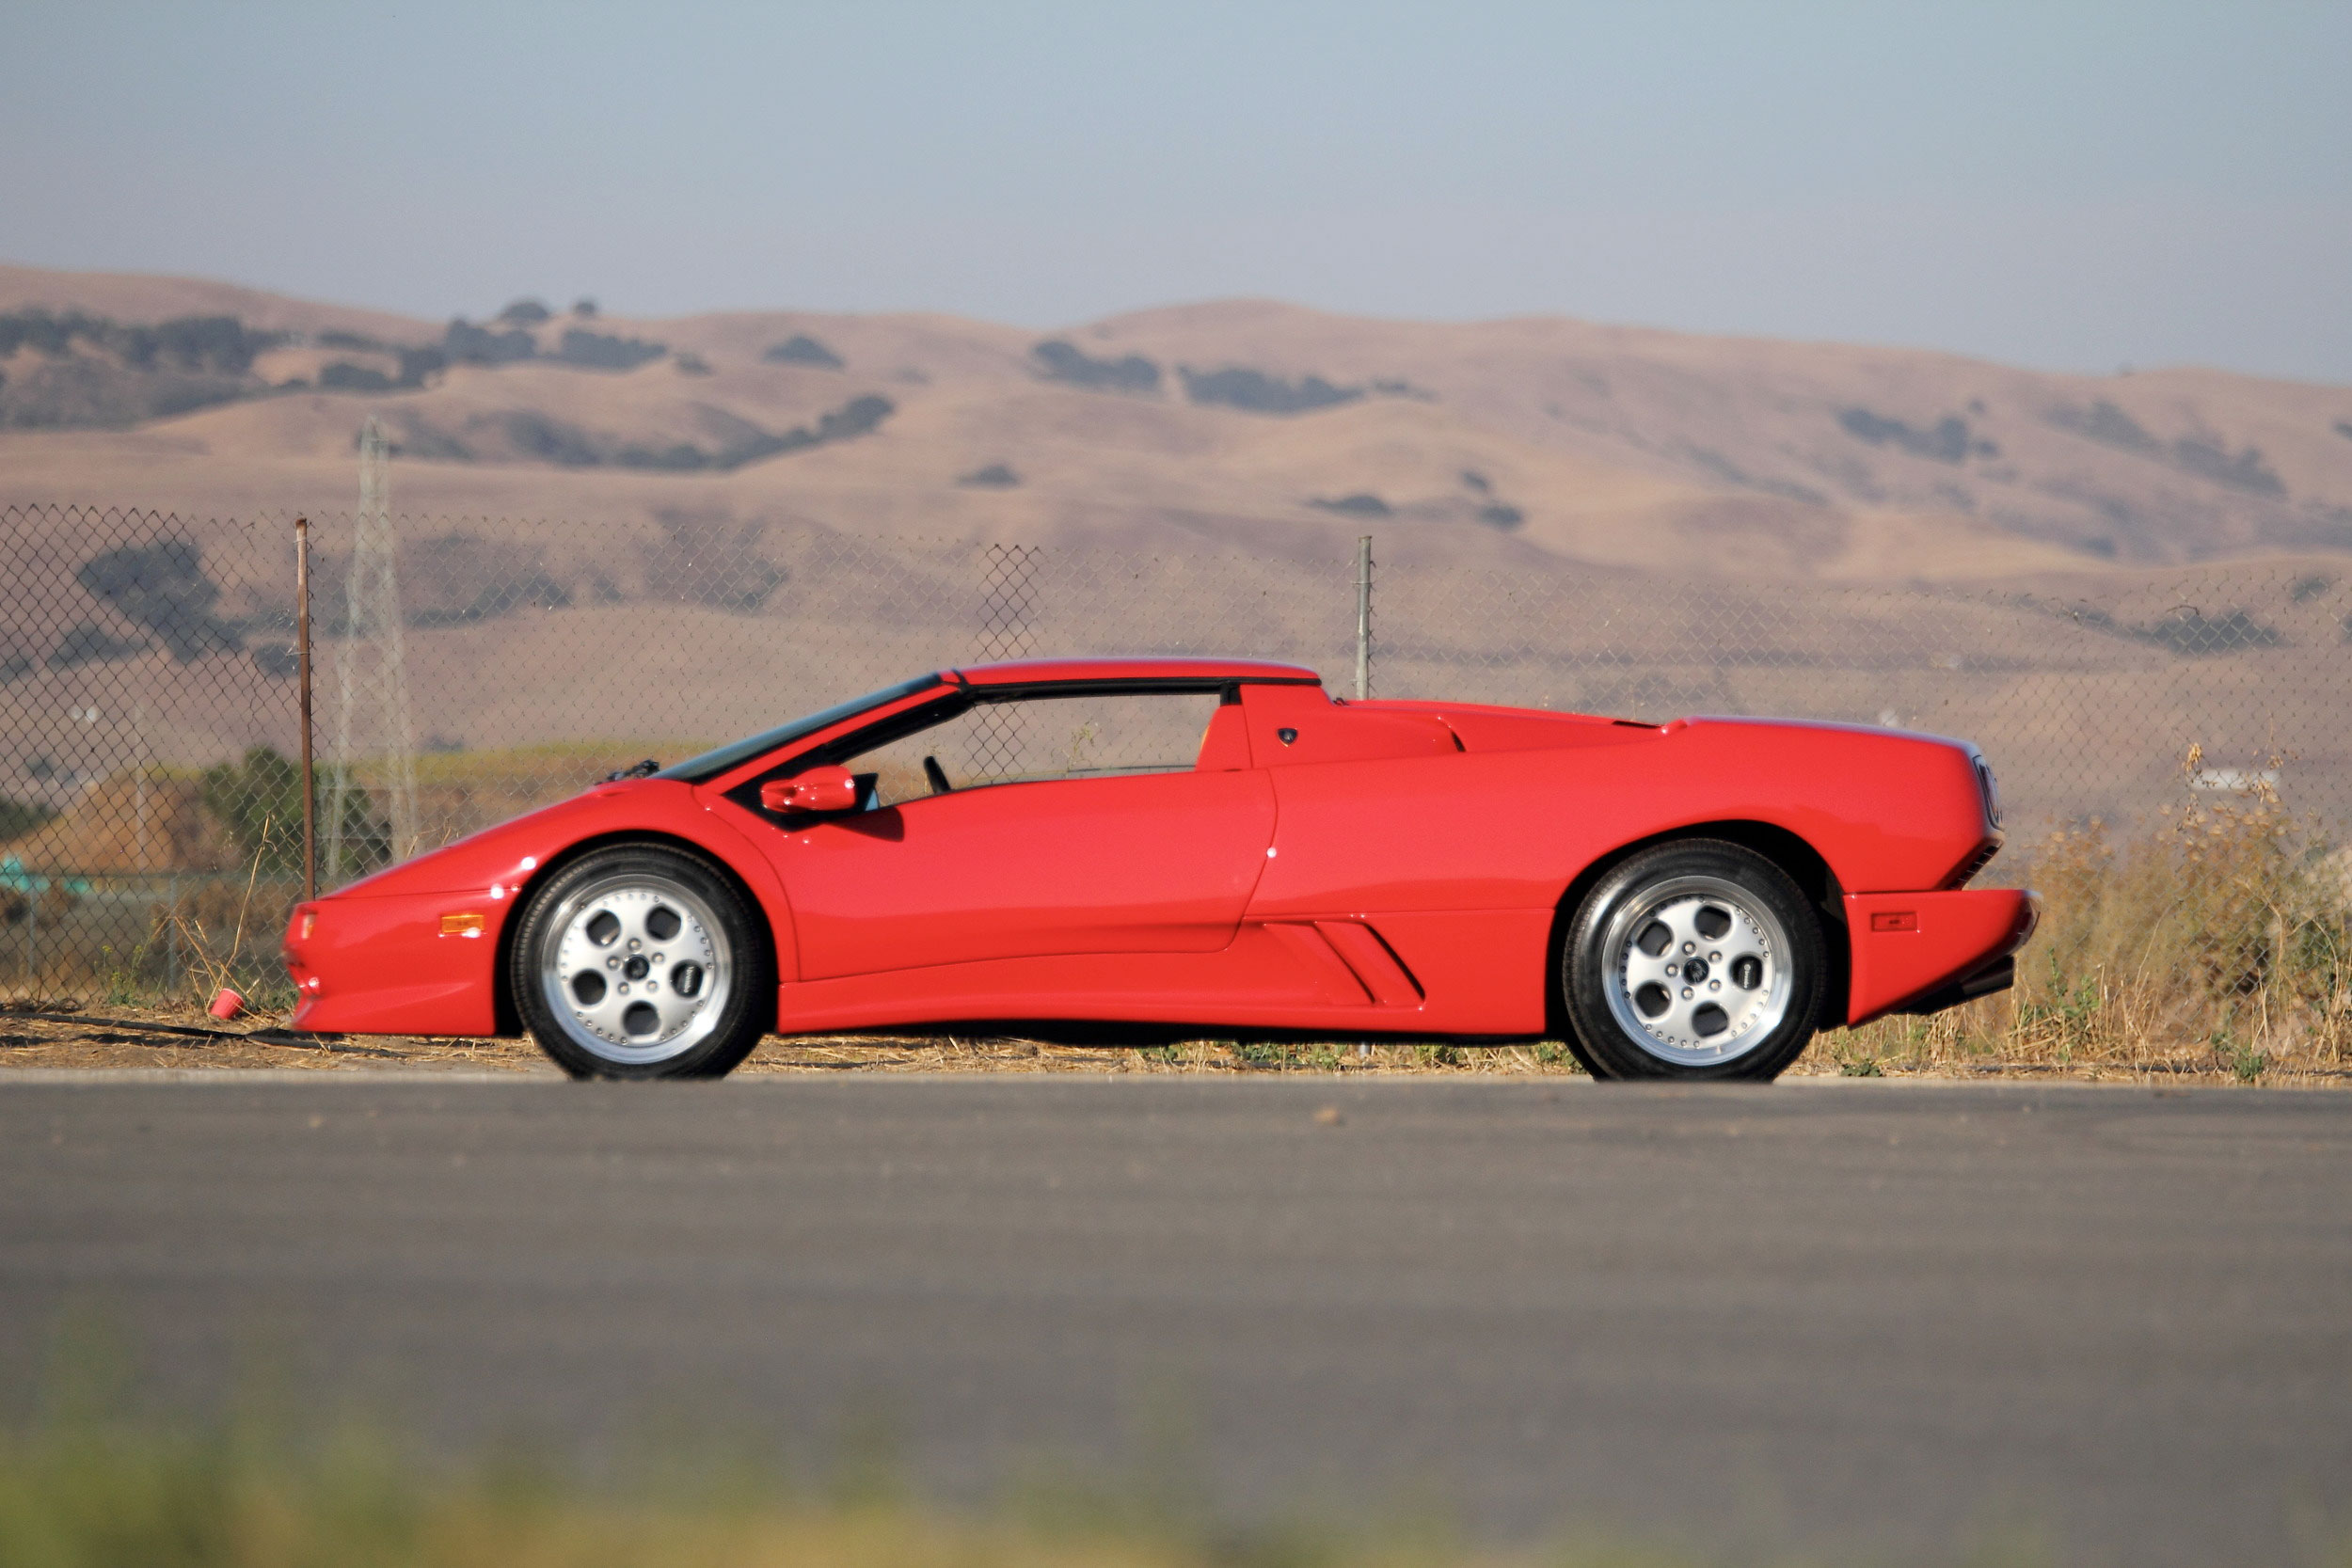 Now's Your Chance To Own George Foreman'sStunning 1997 Lamborghini Diablo